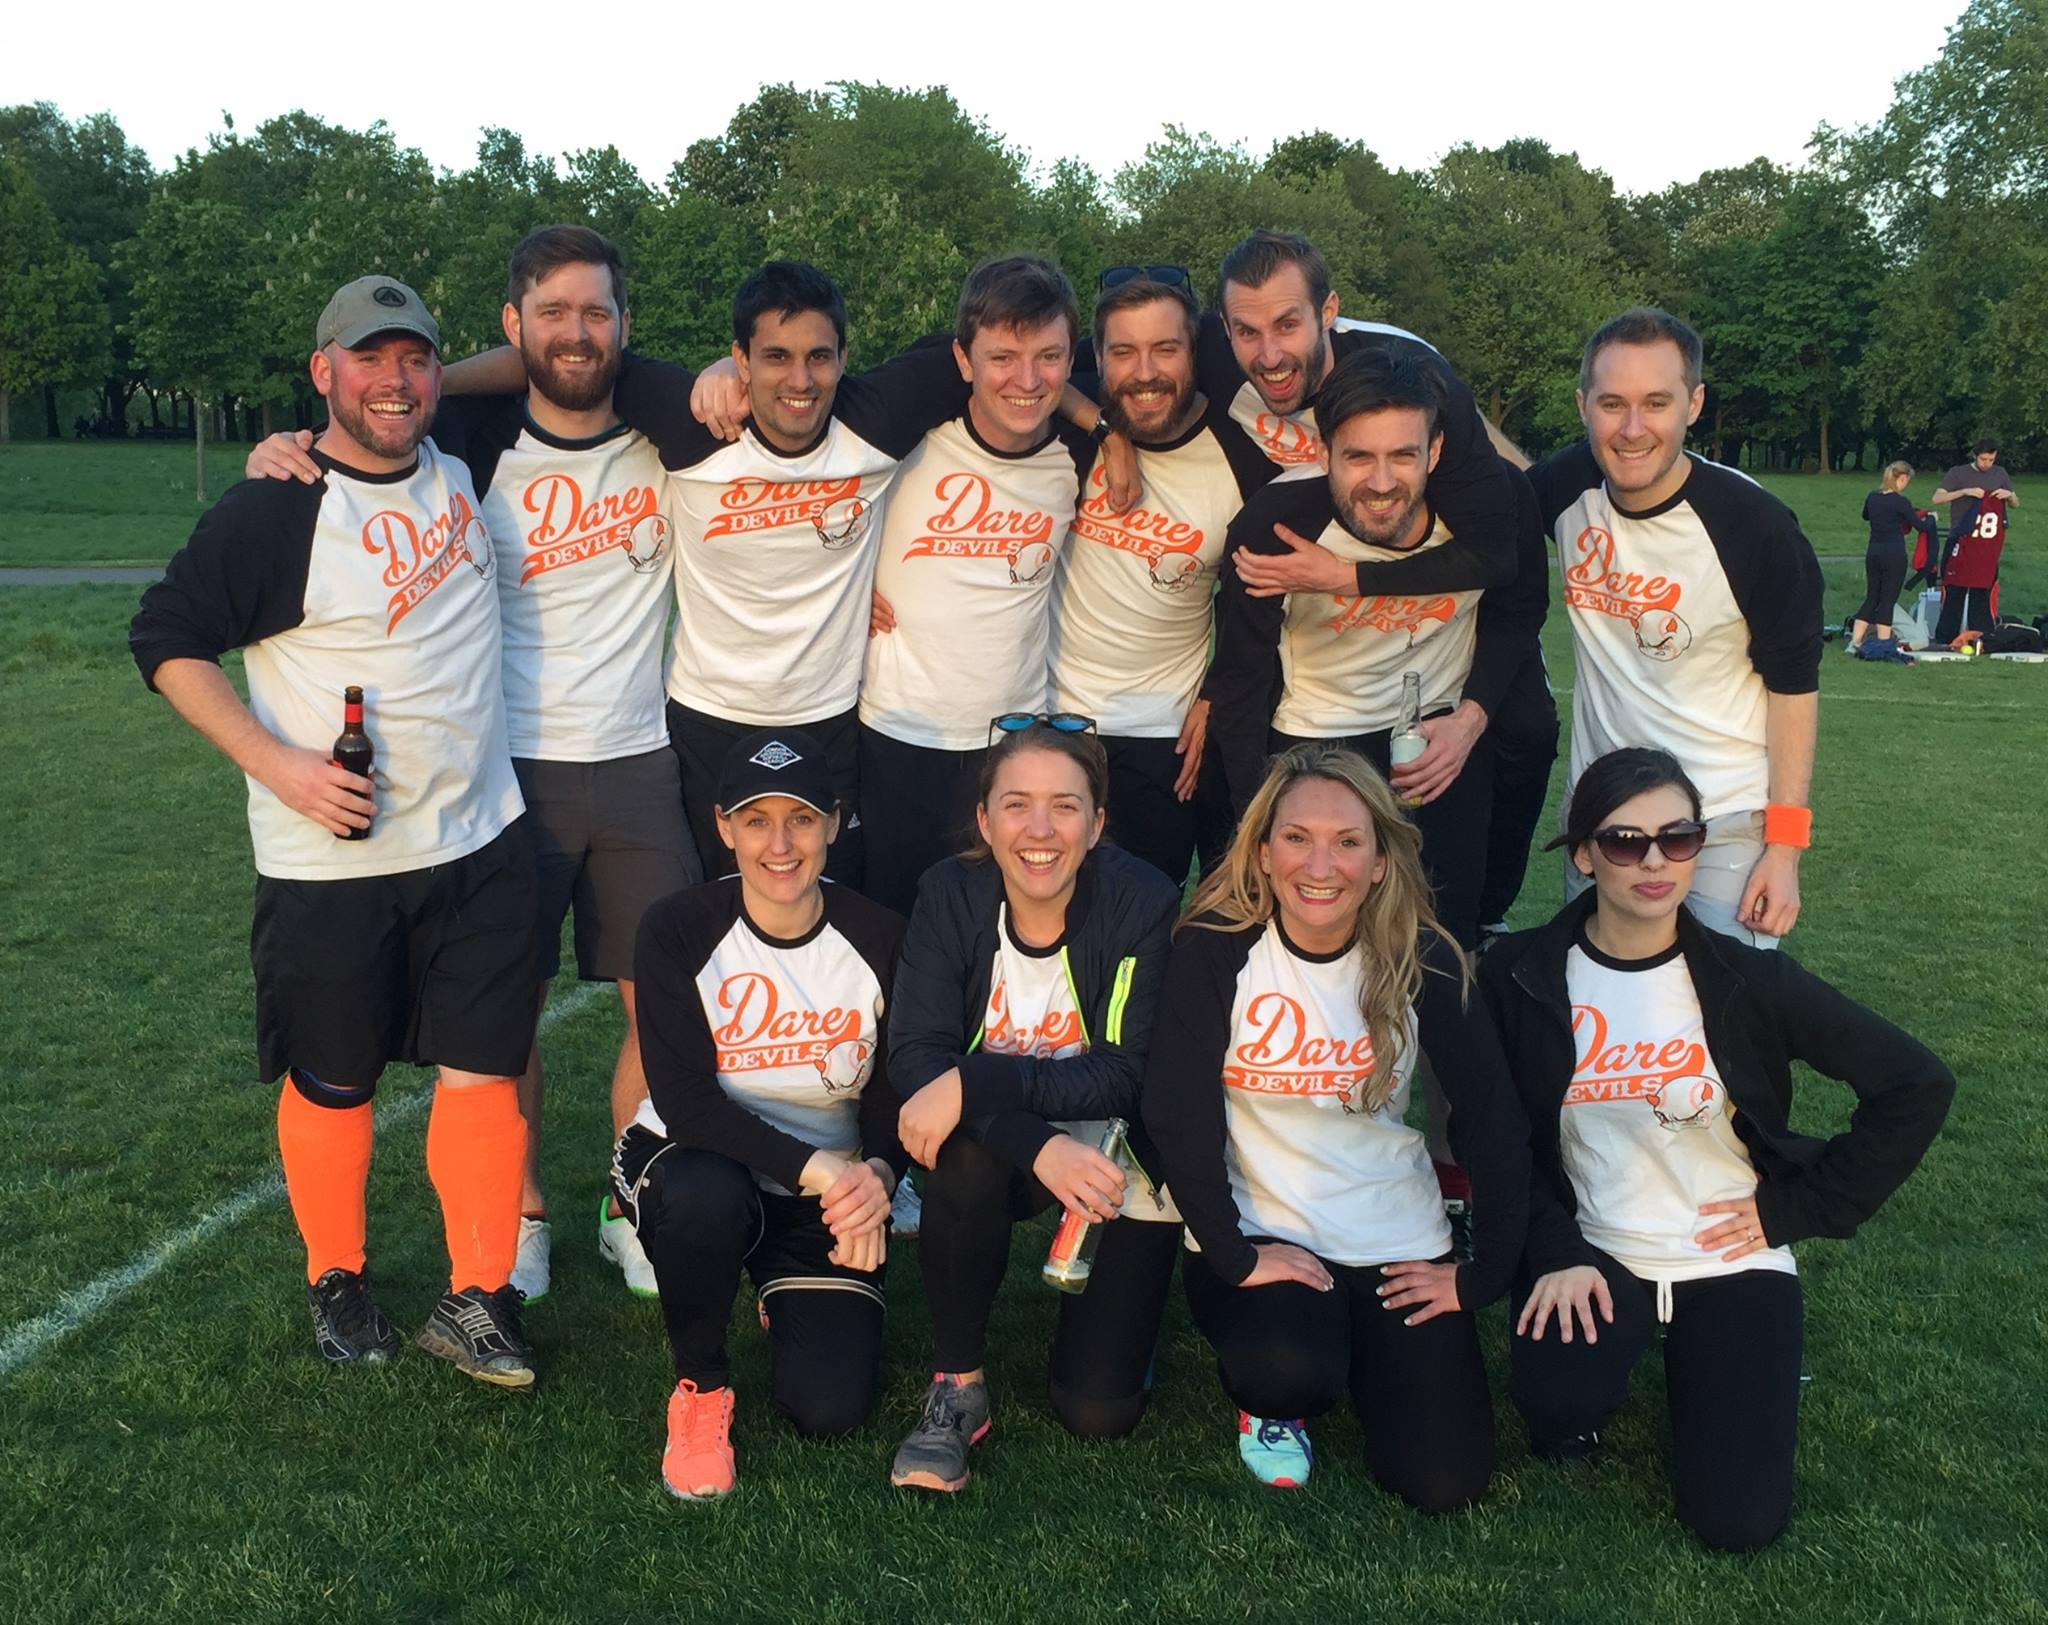 Softball fun in the sun last night with the Dare Devils - congrats to @dneg who won a close-fought game! http://t.co/0RtNkmB4dw